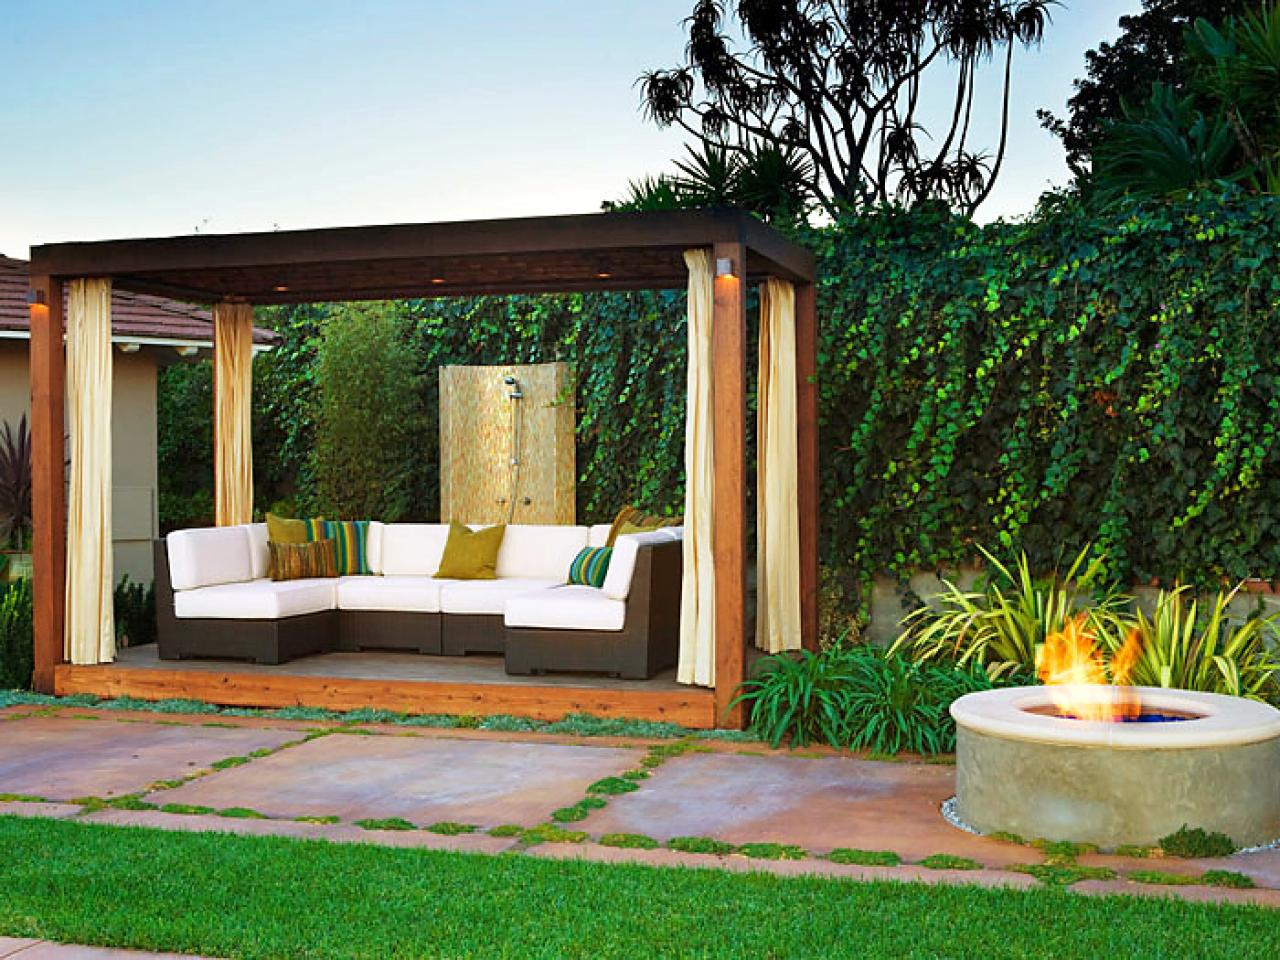 beautiful outdoor sofas outdoor spaces patio ideas decks gardens hgtv. Black Bedroom Furniture Sets. Home Design Ideas